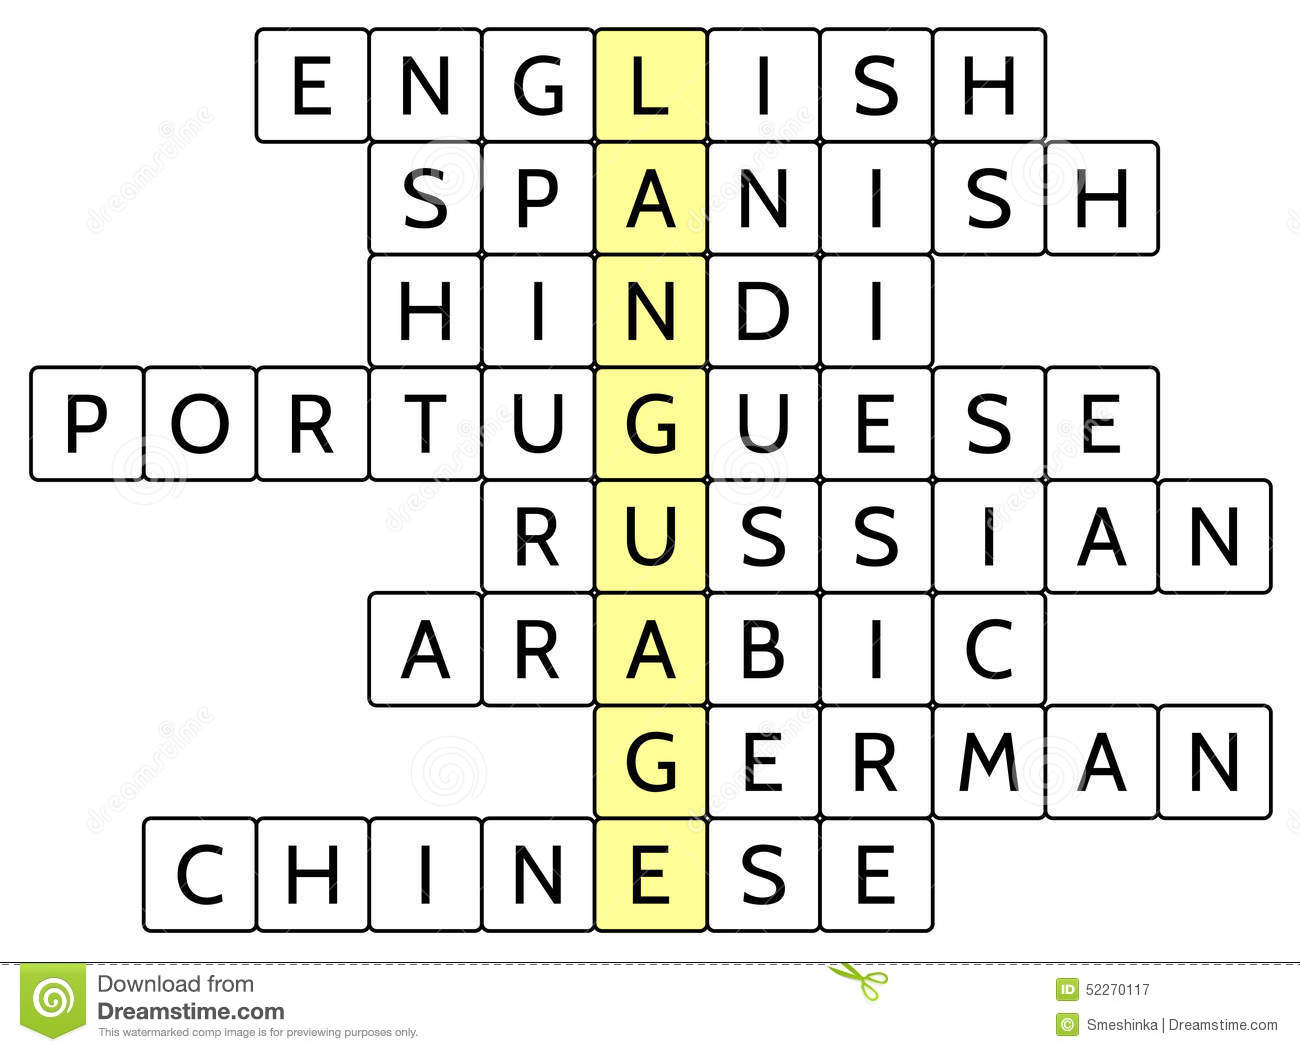 Crossword Puzzle For The Word Language And Of The Most Widely - What is the most widely spoken language in the world